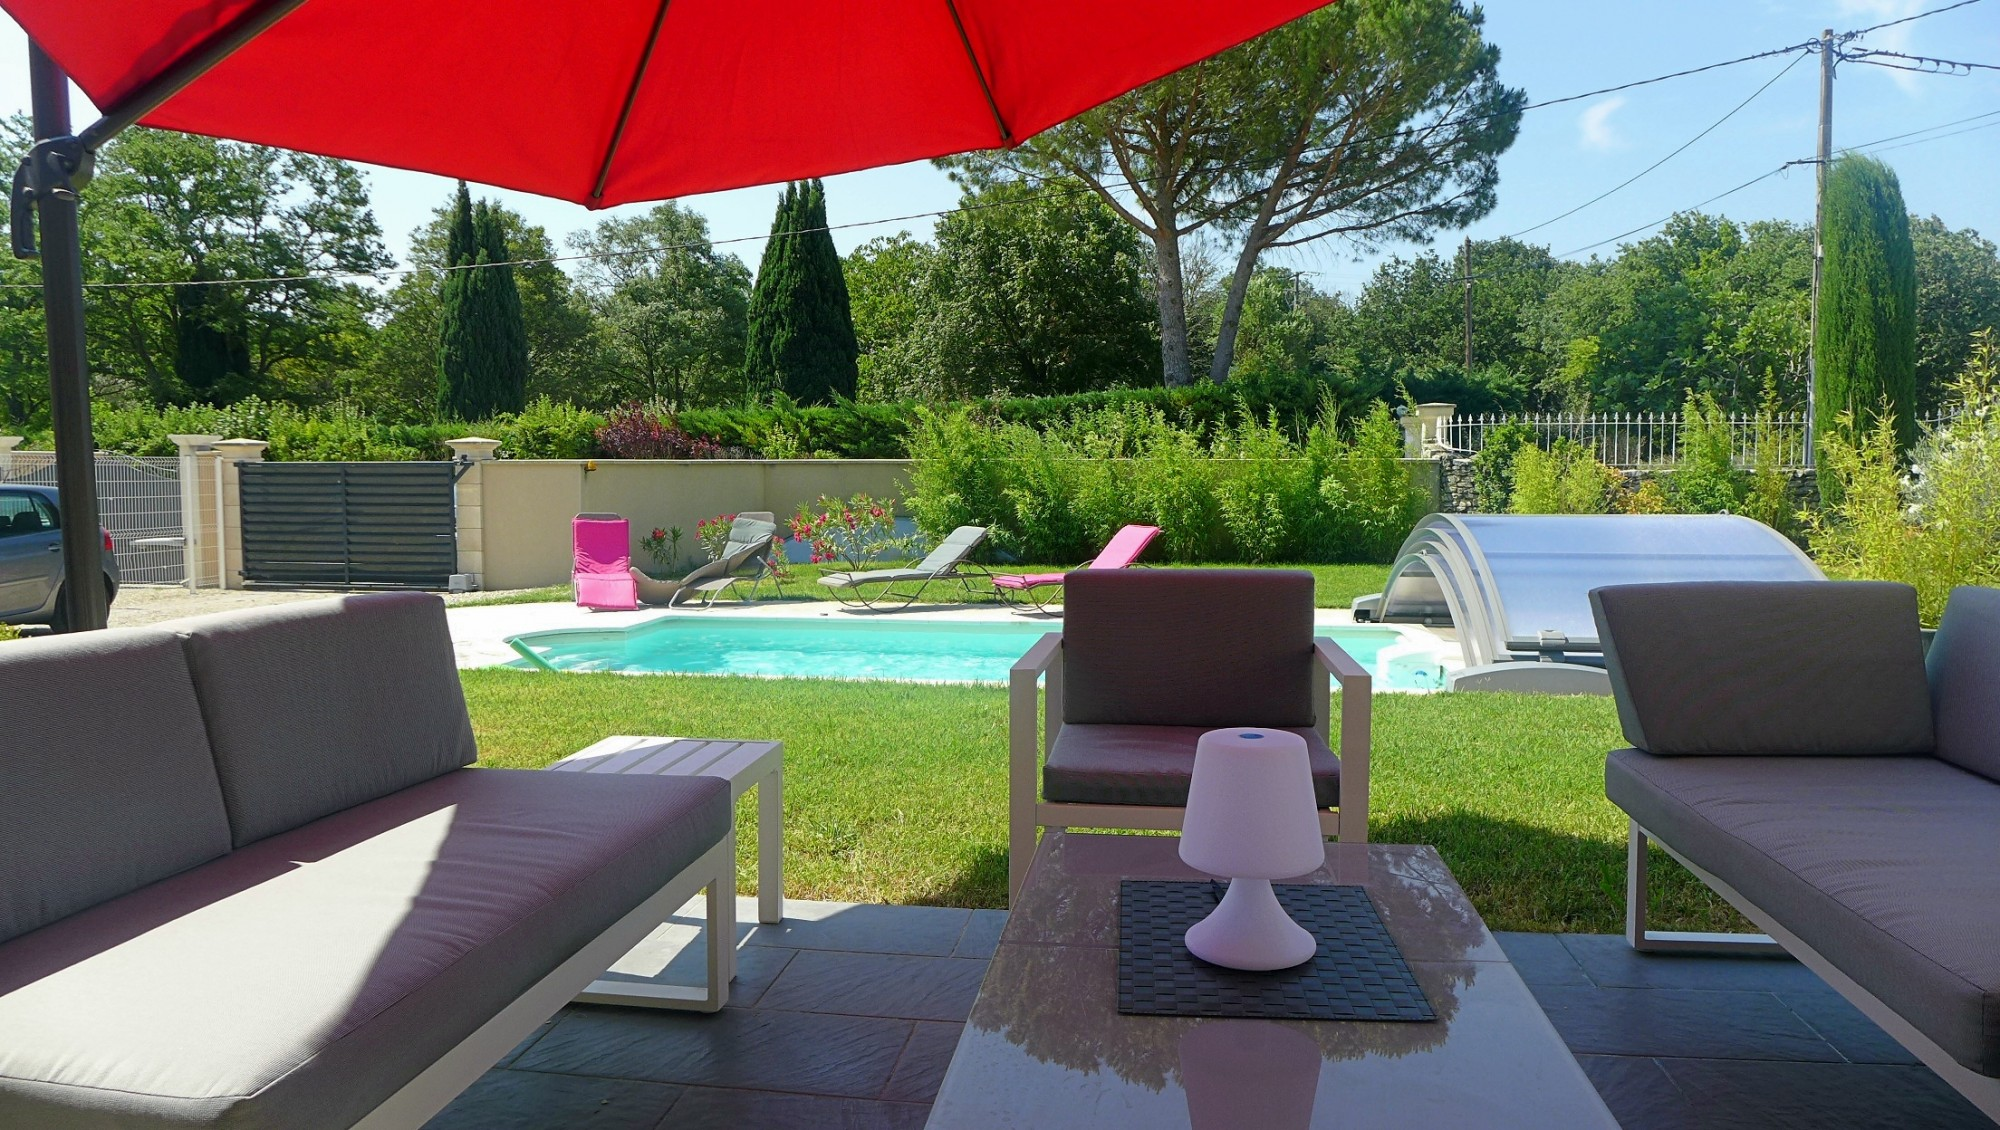 Location drome provencale locations villa drome provencale for Saint paul trois chateaux piscine